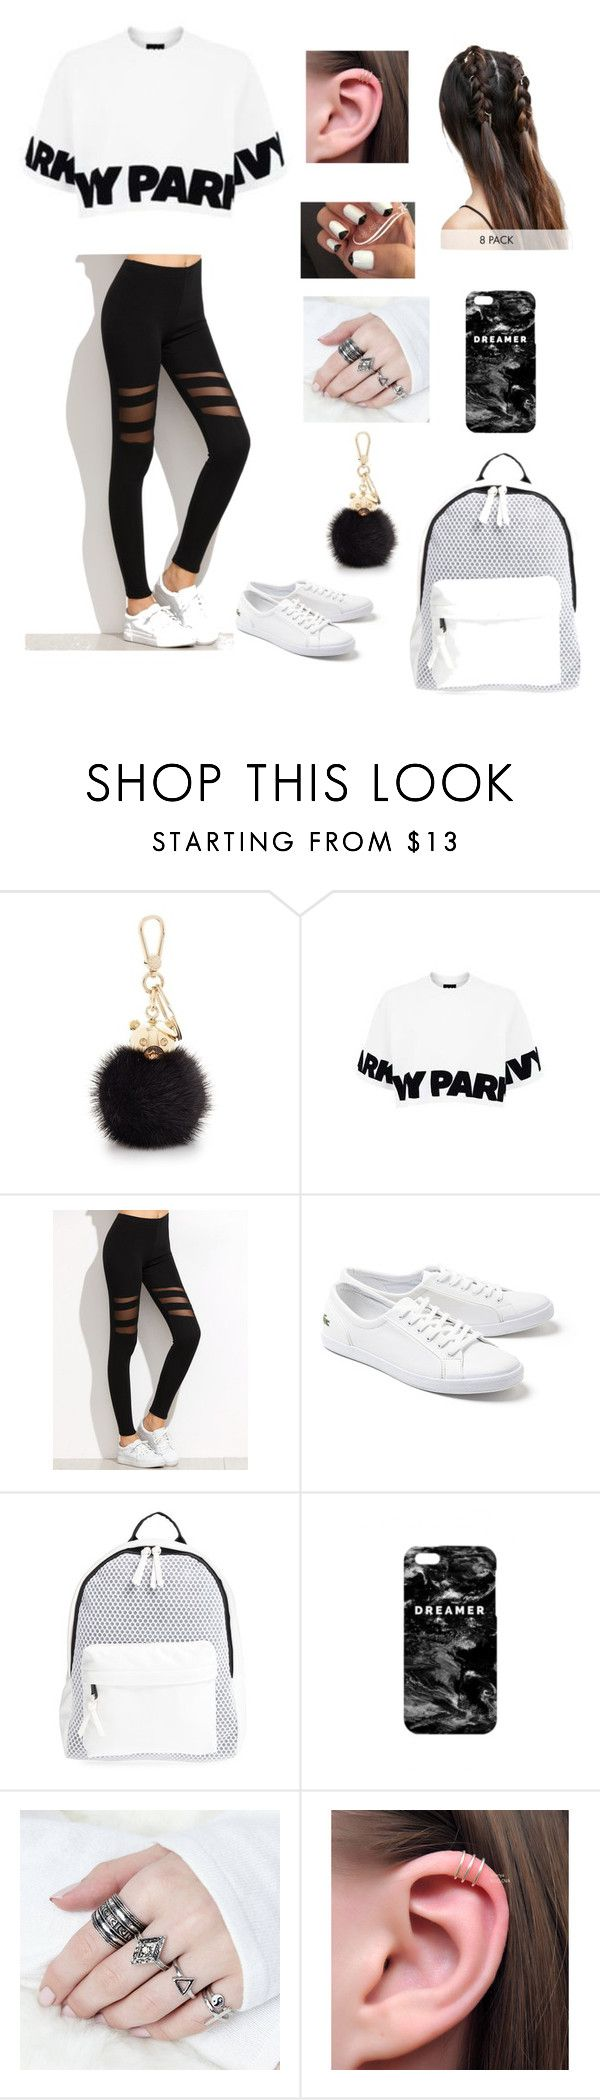 """black and white Ivy Park"" by leaelias ❤ liked on Polyvore featuring Furla, Topshop, Lacoste, Poverty Flats, Mr. Gugu & Miss Go and ASOS"